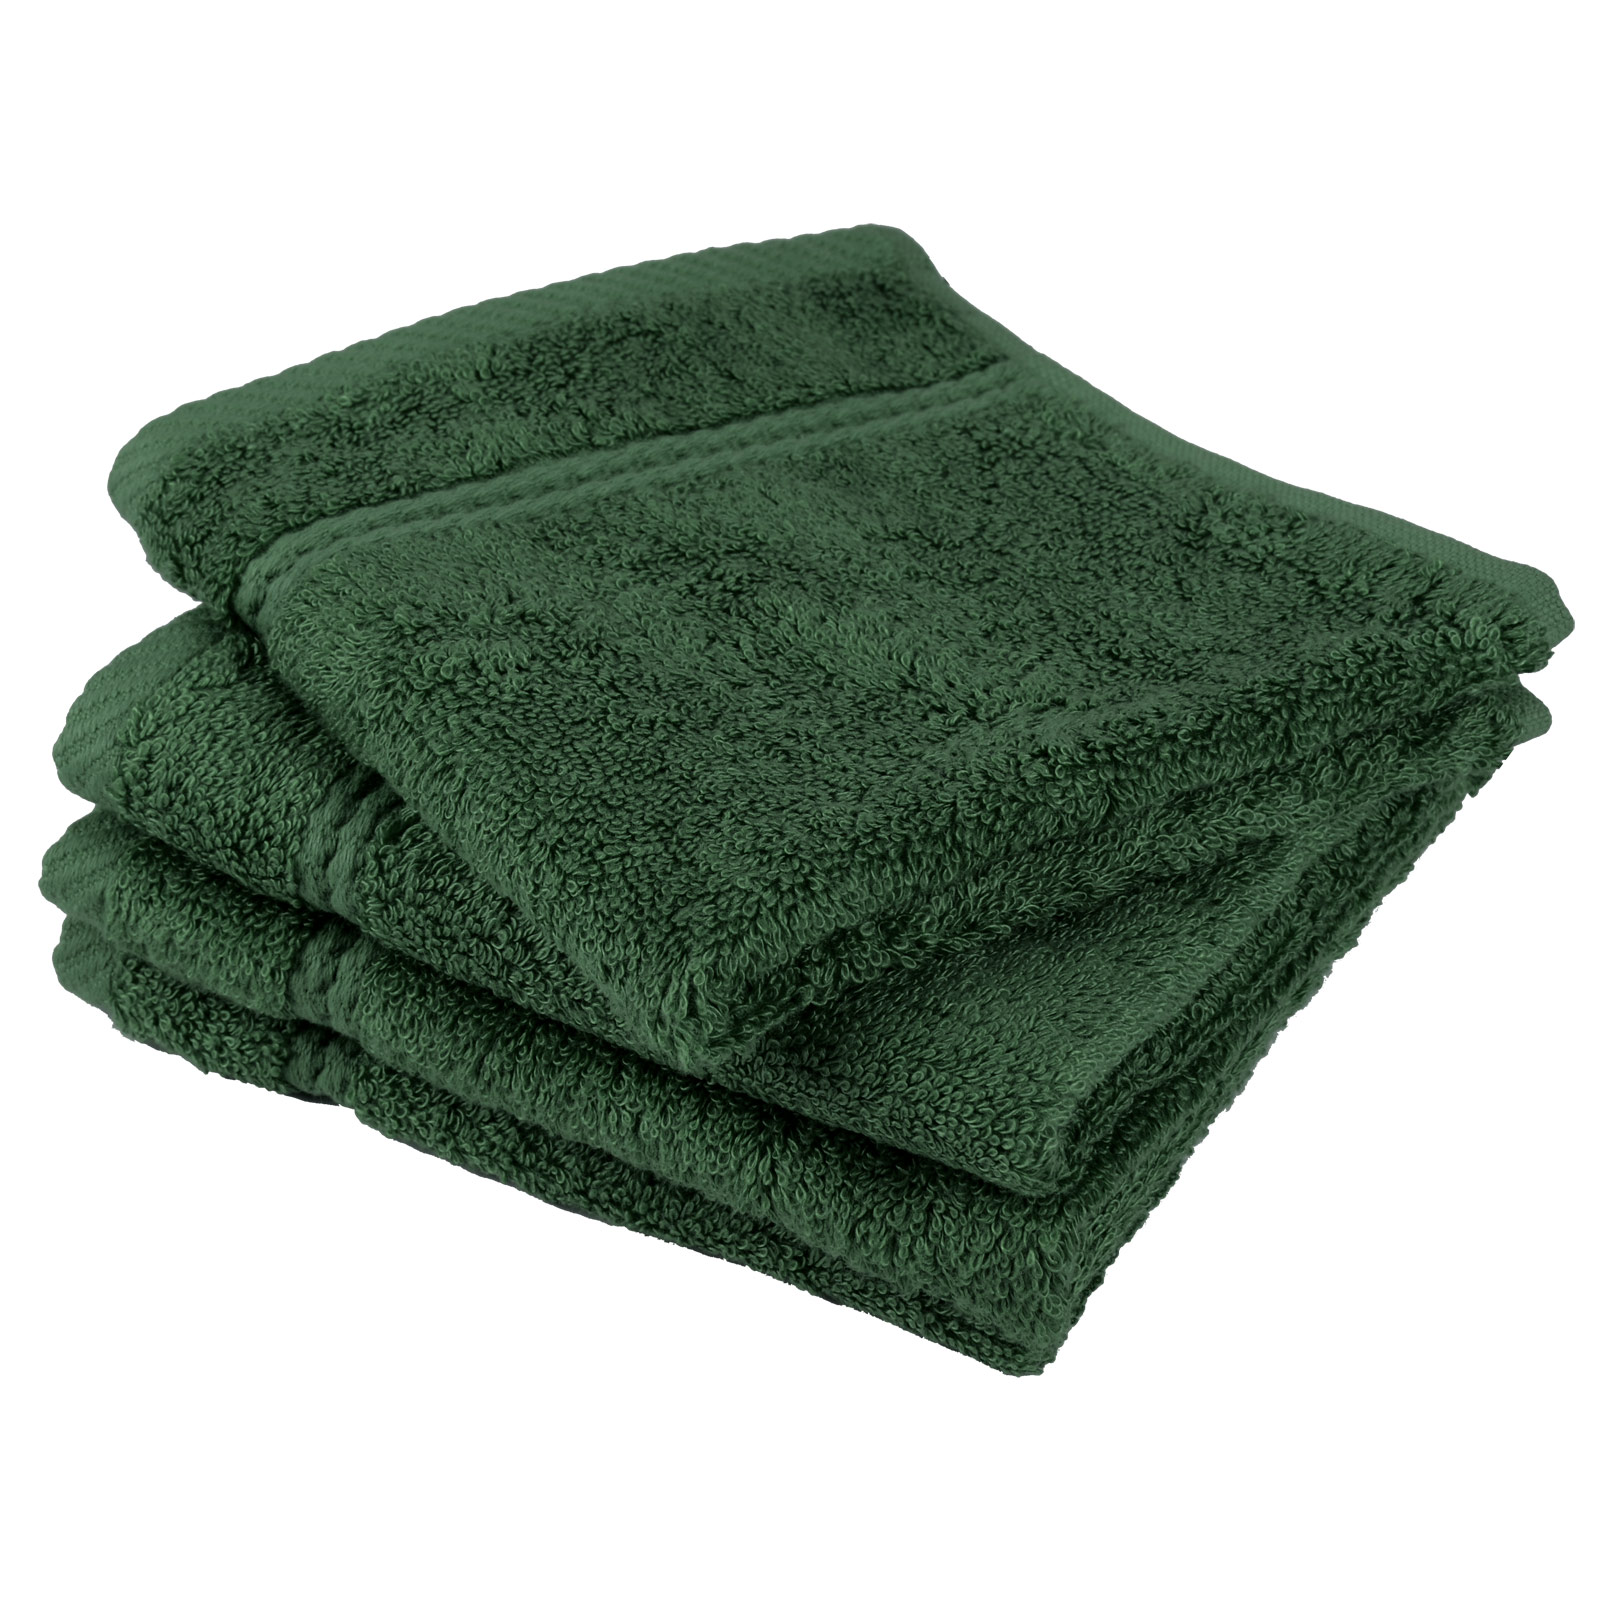 Relatively Forest Green Bamboo Bathroom Bath Linen Soft Face Cloth Flannel  OS91